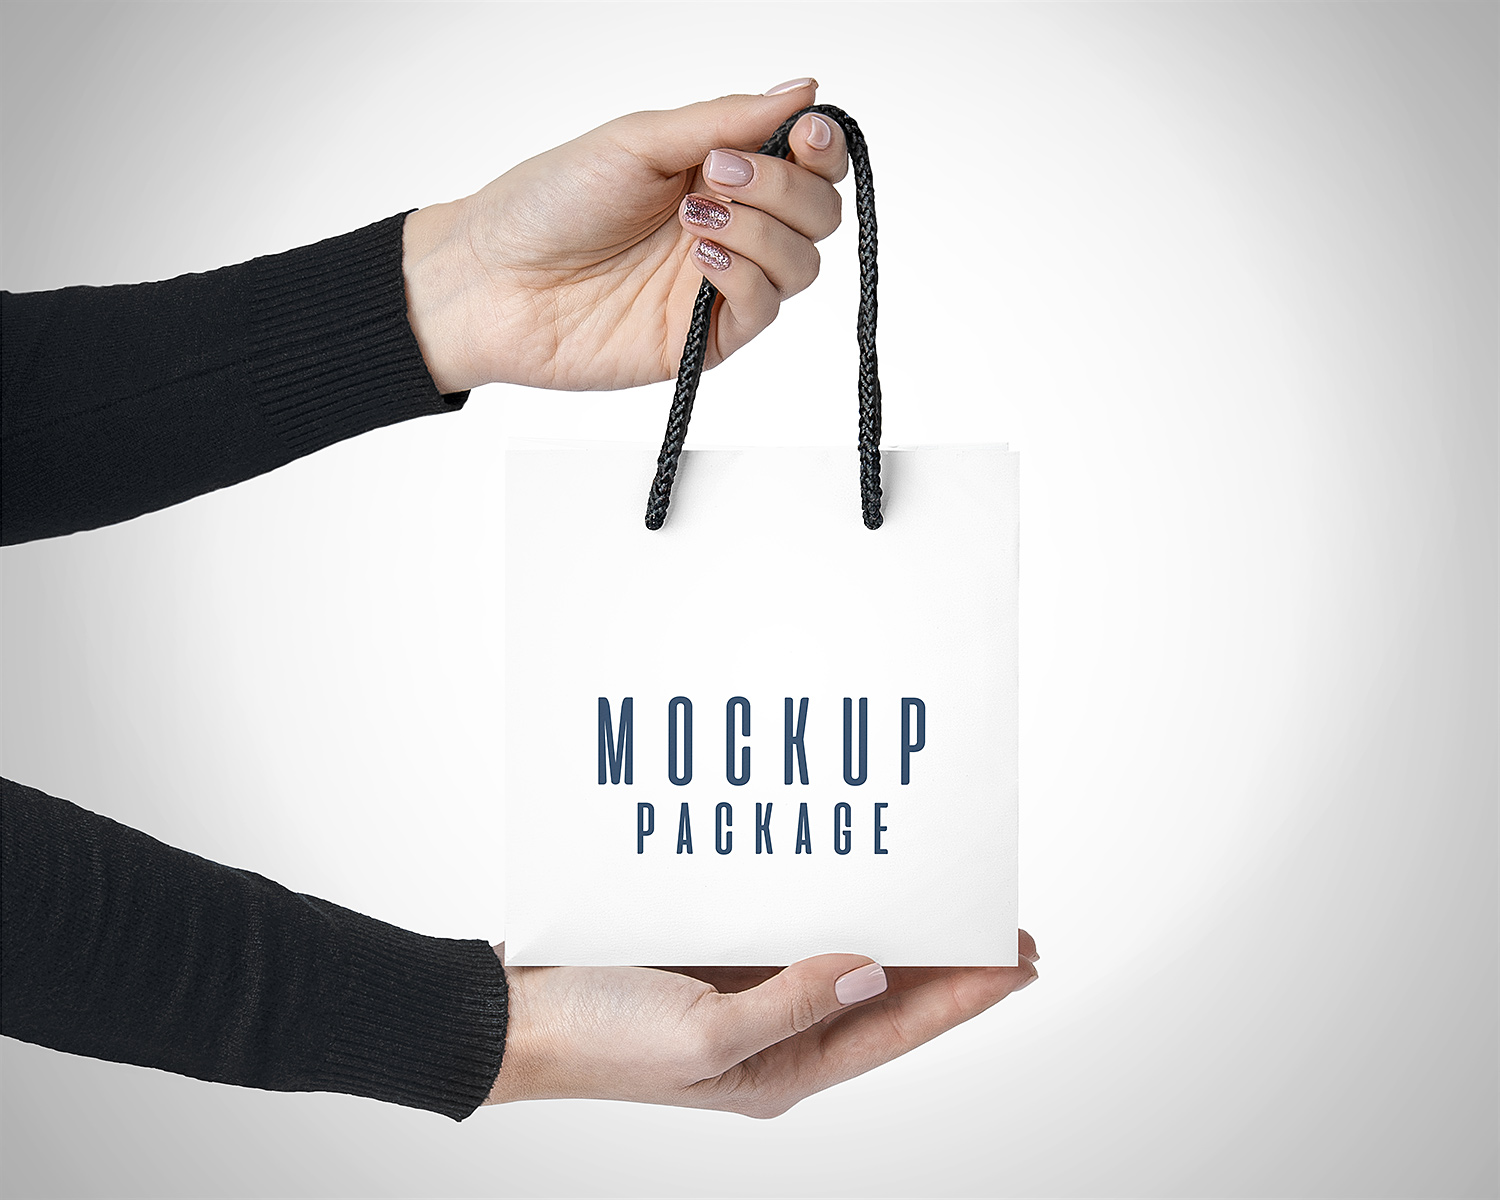 Gift-Bags-in-Hands-Free-Mockup-01